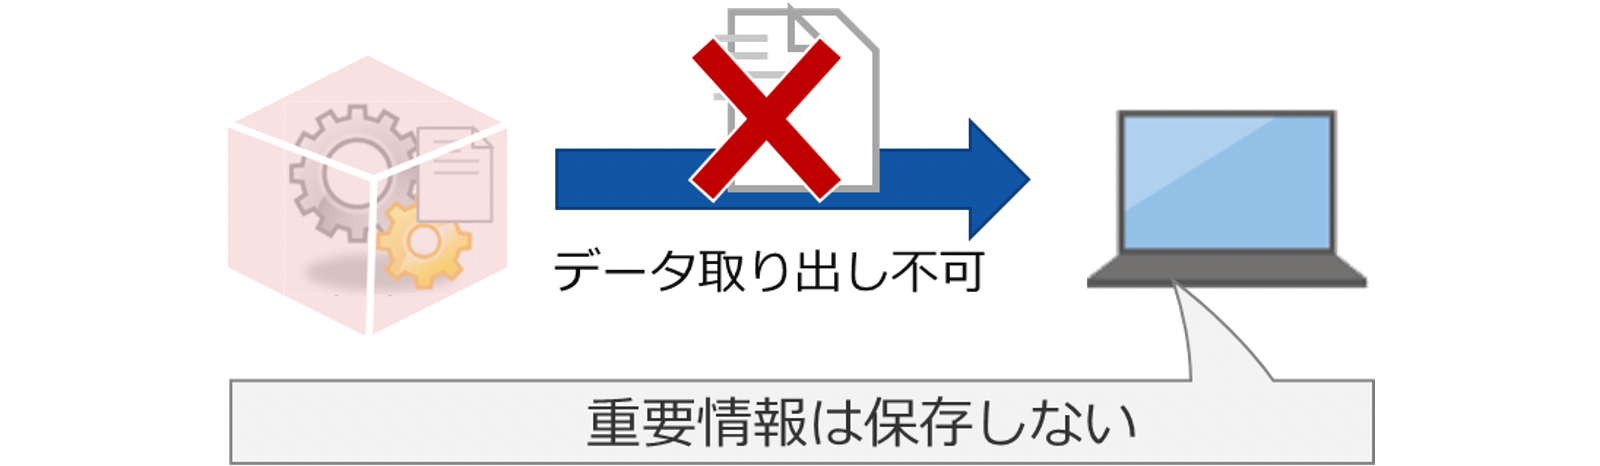 20200918-3-04.png